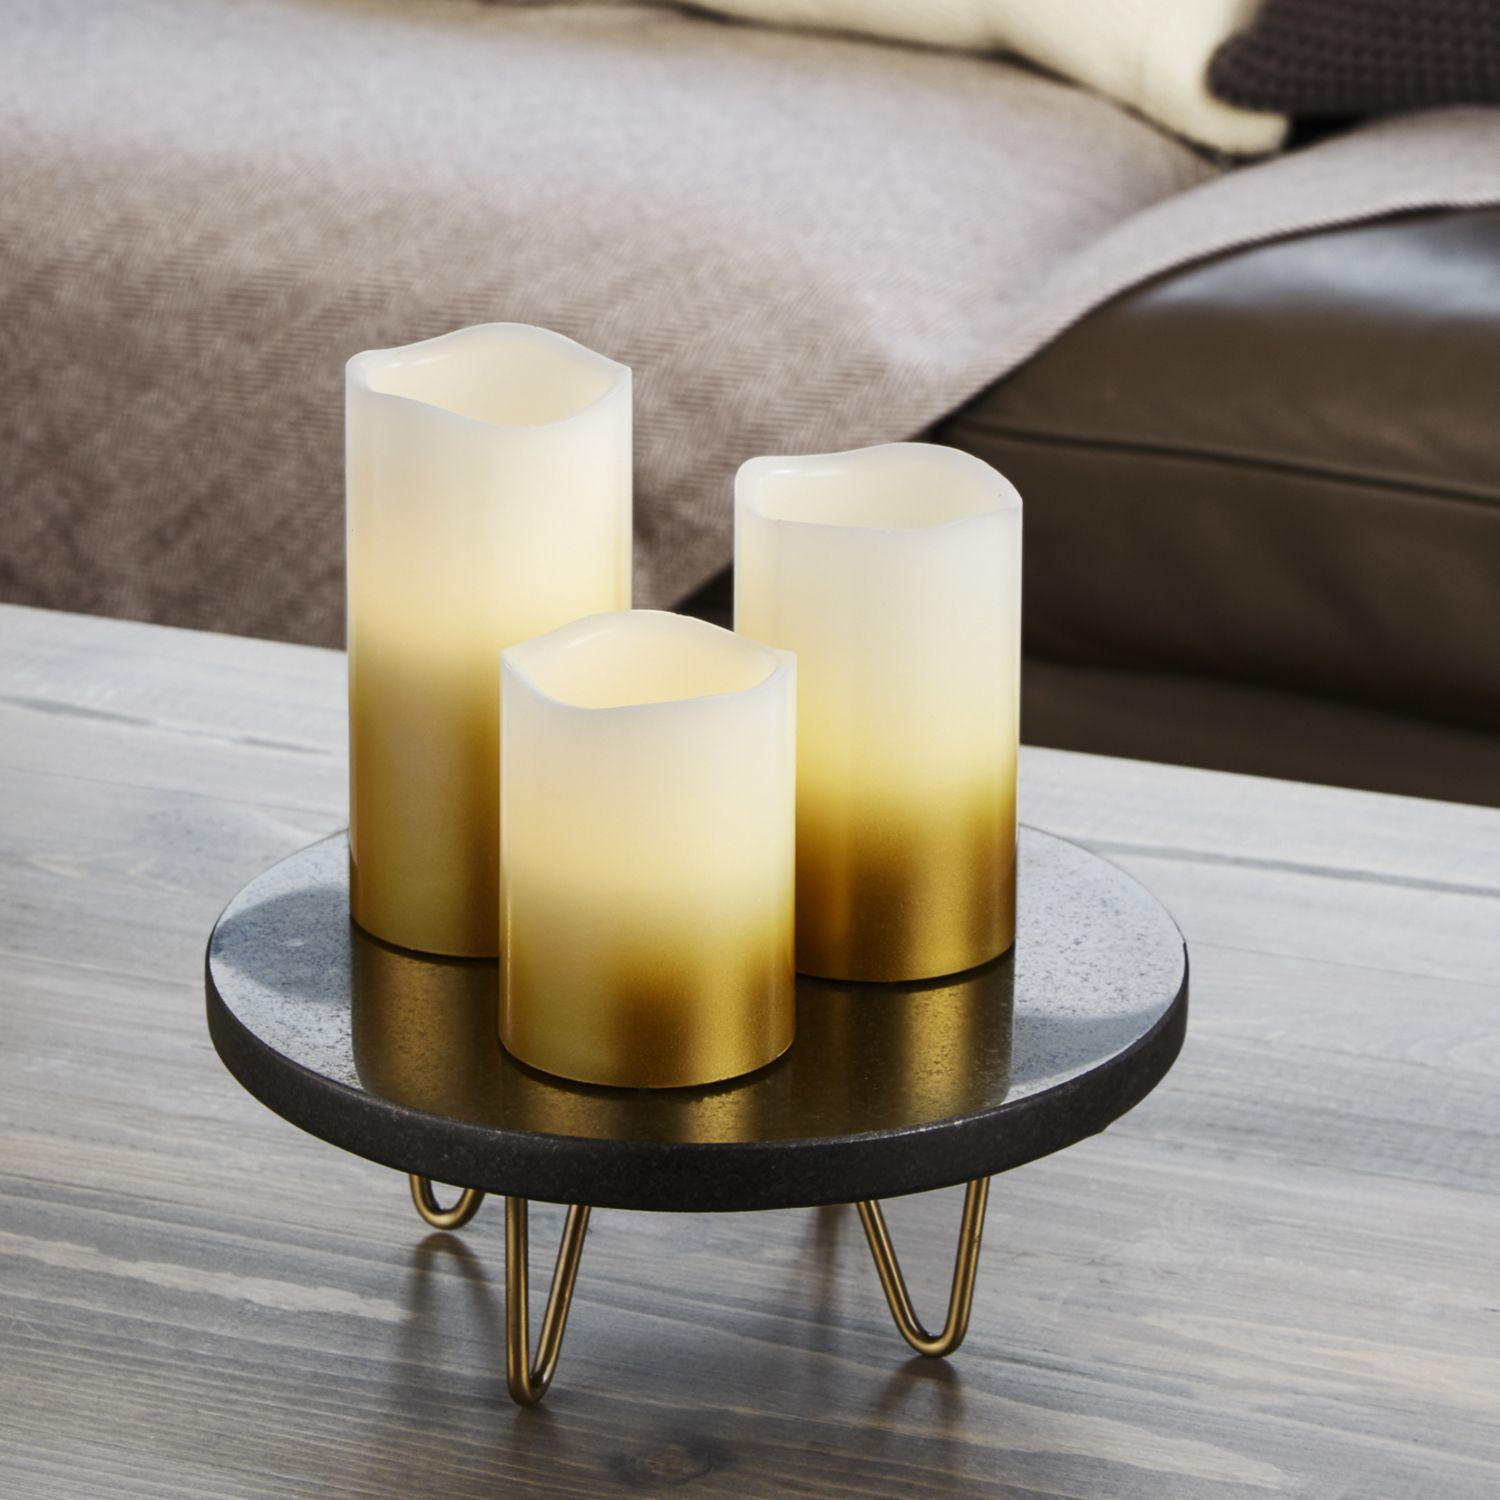 This Set Of 3 Gold Pillar Candles Features A Faded Ombre Design Perfect For Eclectic Holiday Settings Add Touch Elegance To Any Style Decor With